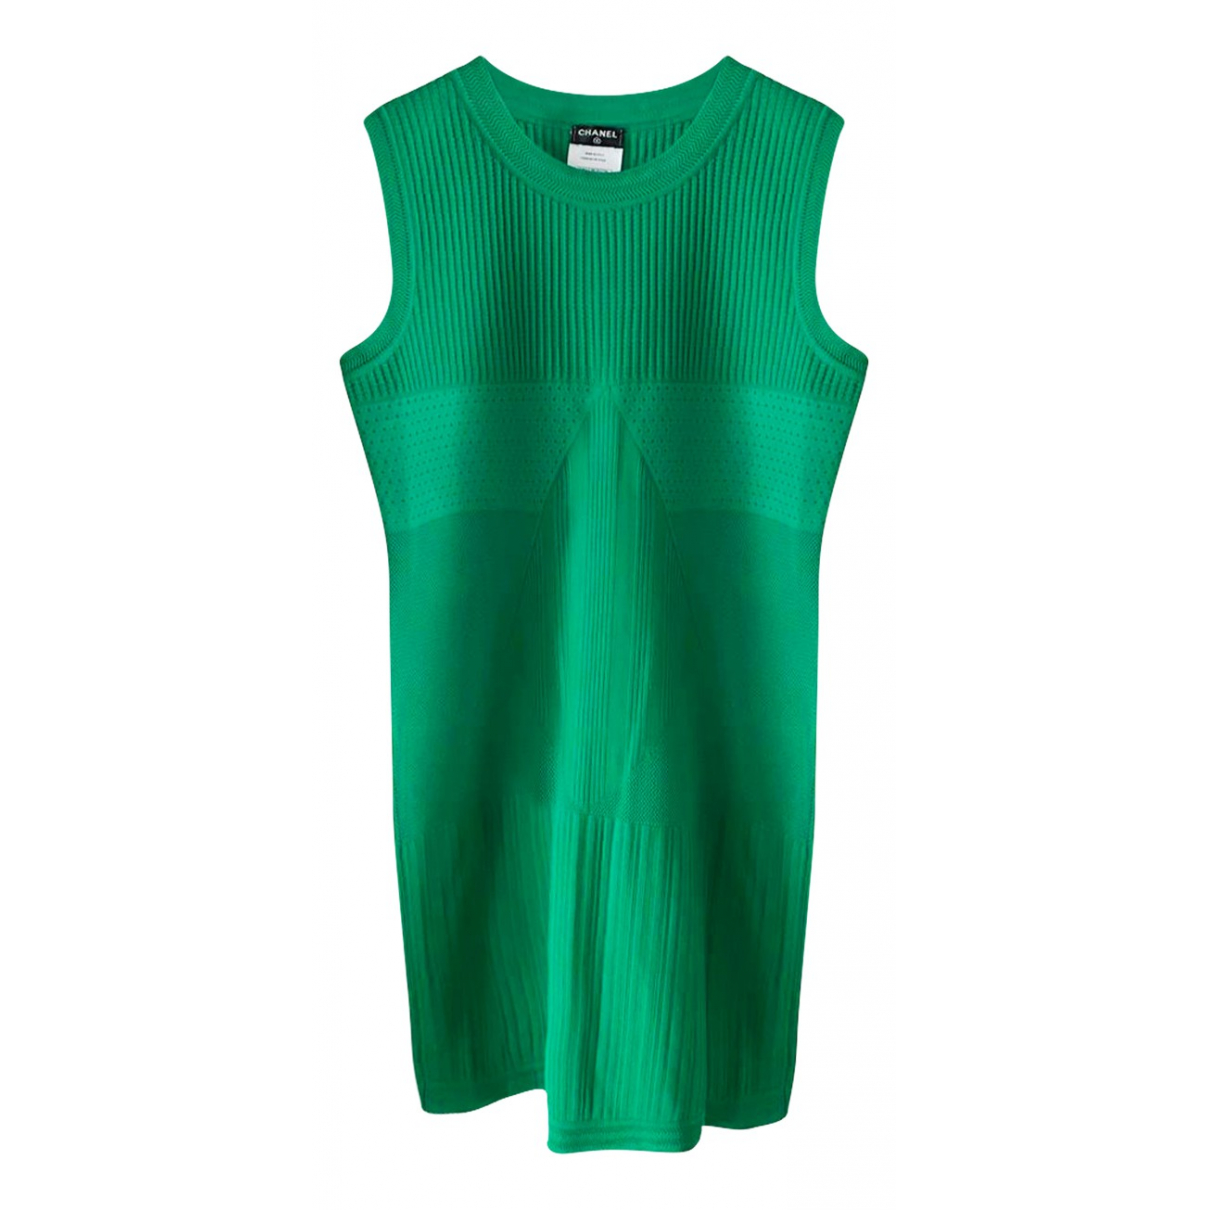 Chanel \N Green Cotton dress for Women 38 FR